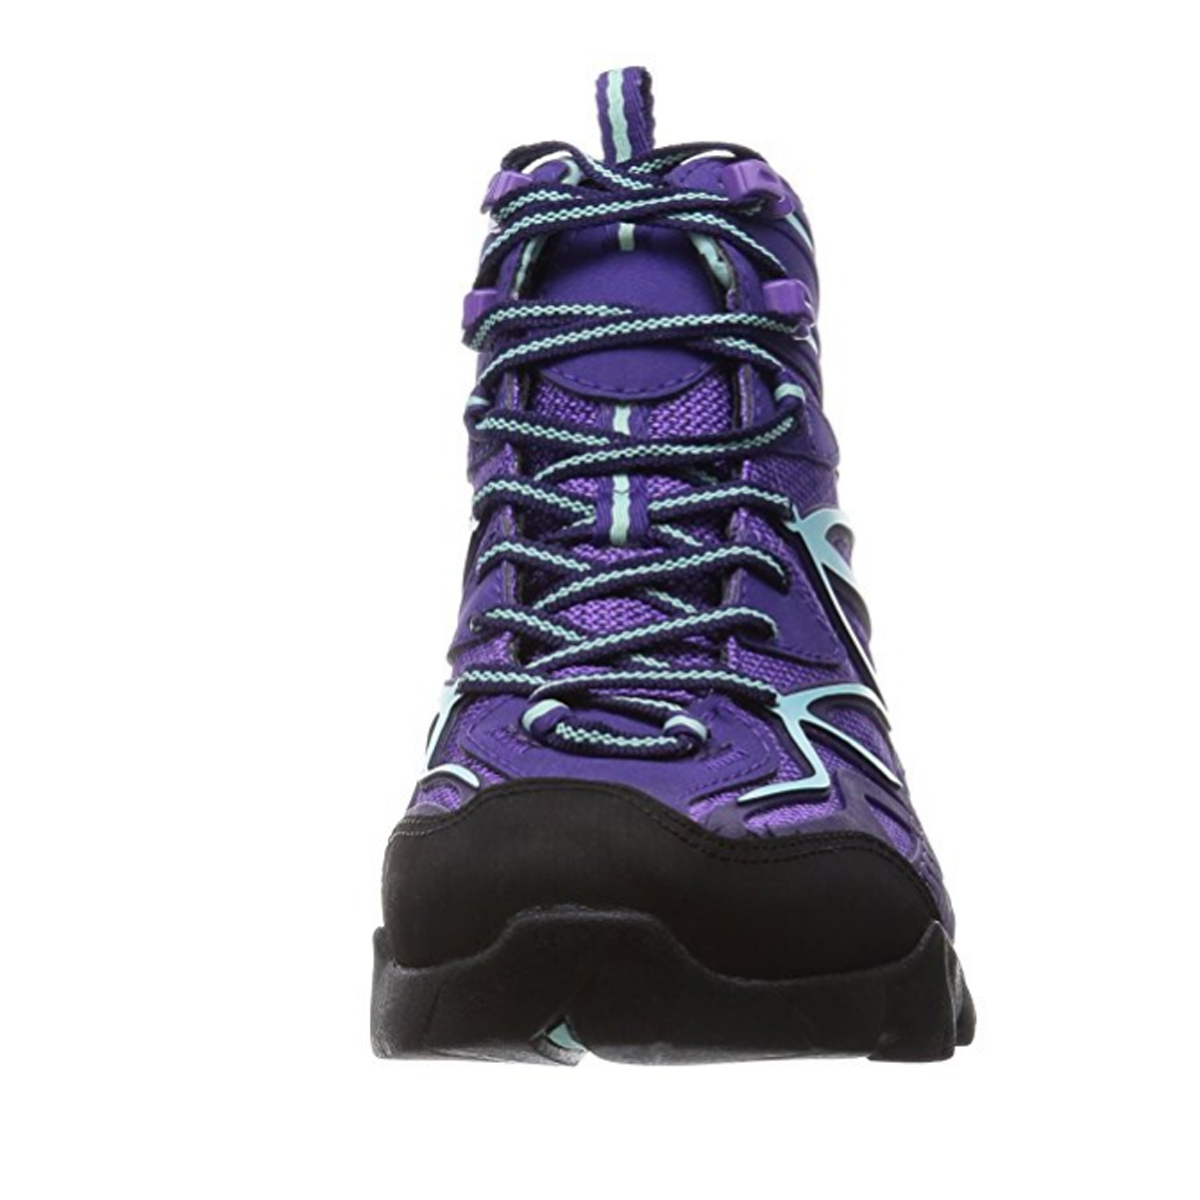 Merrell Merrell Merrell Womens Capra Mid Gore-Tex Outdoors Hiking Boots Trail shoes US Size 69 9b92a0